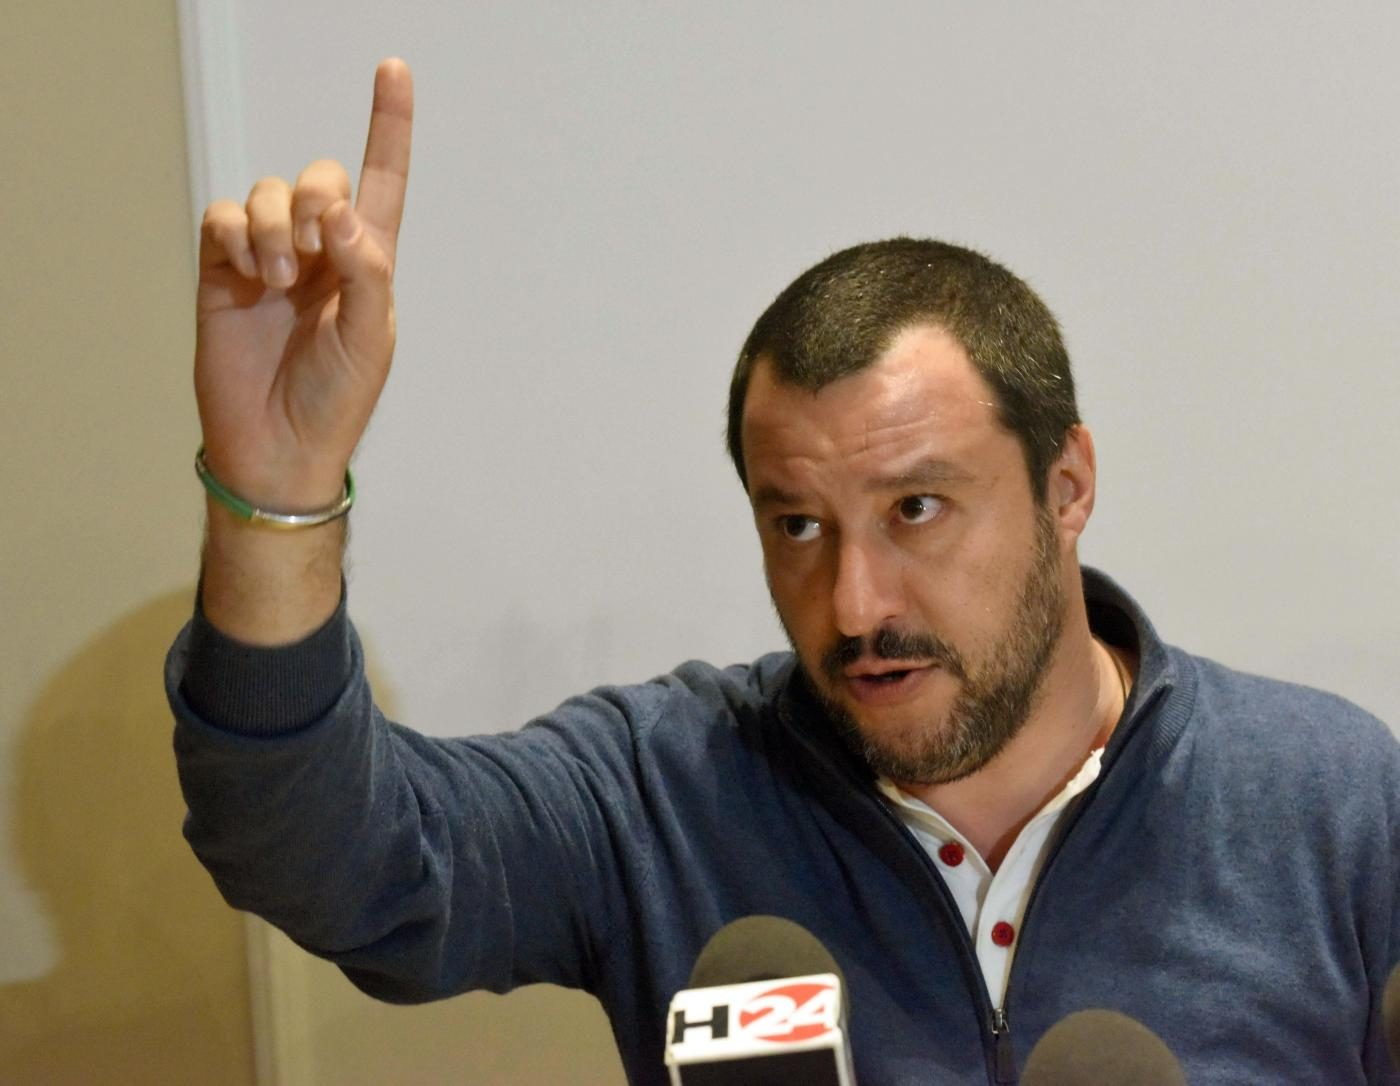 salvini - photo #28